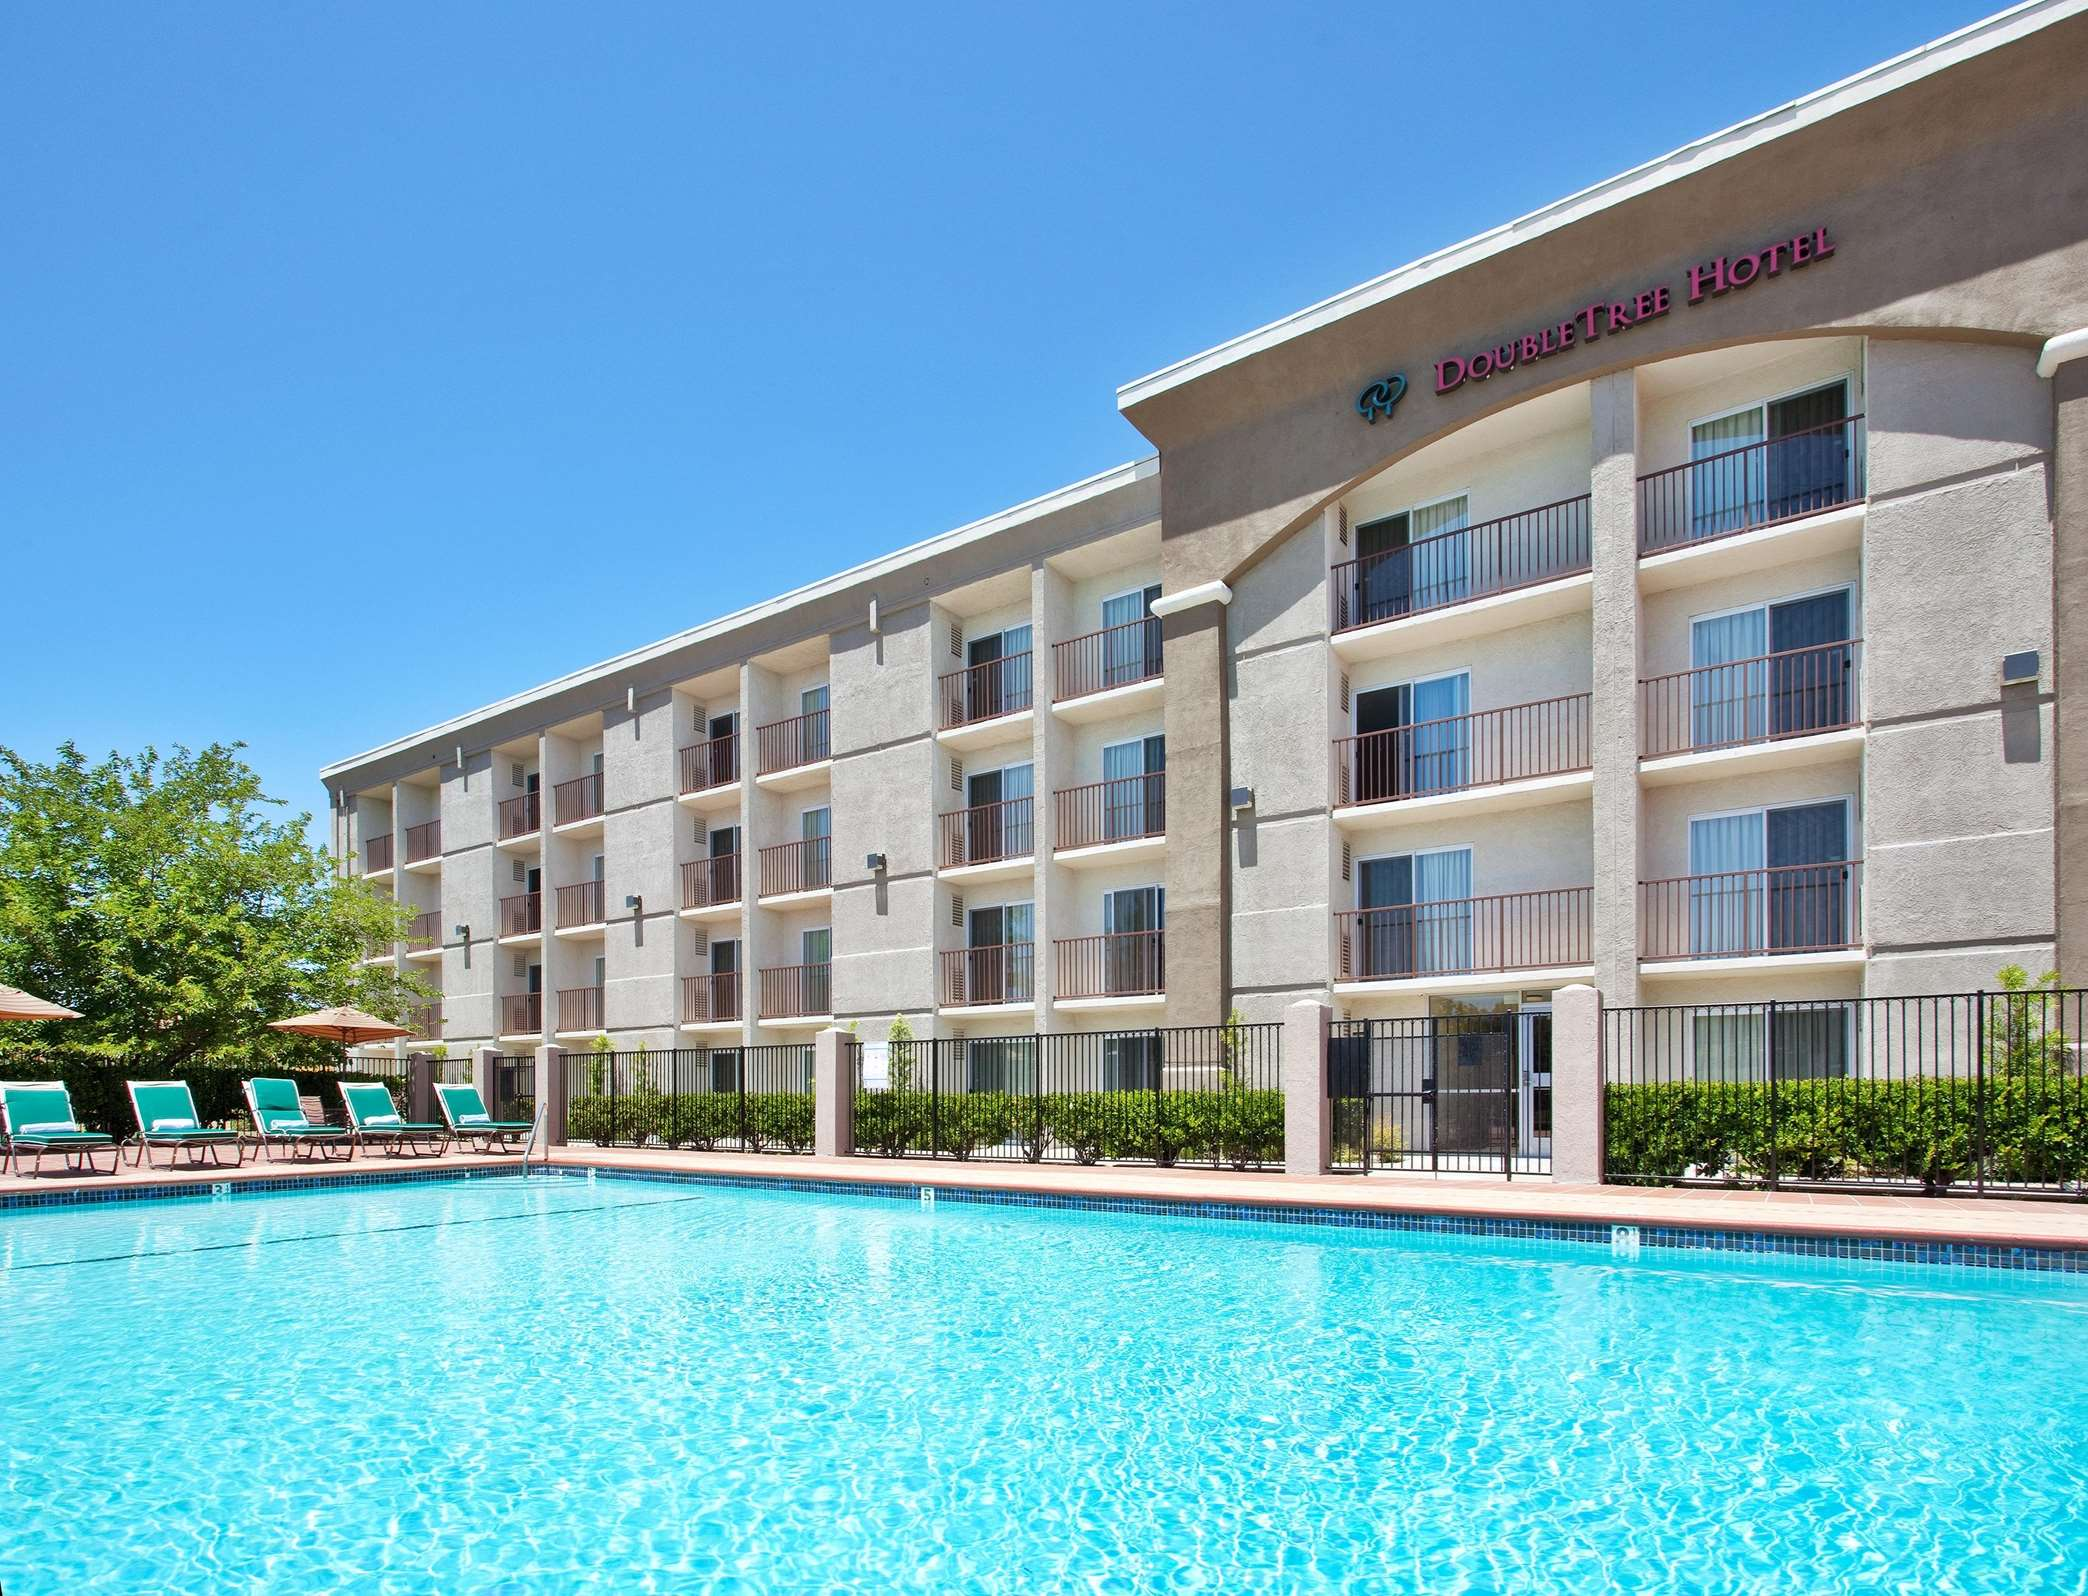 Online coupons for doubletree hotel